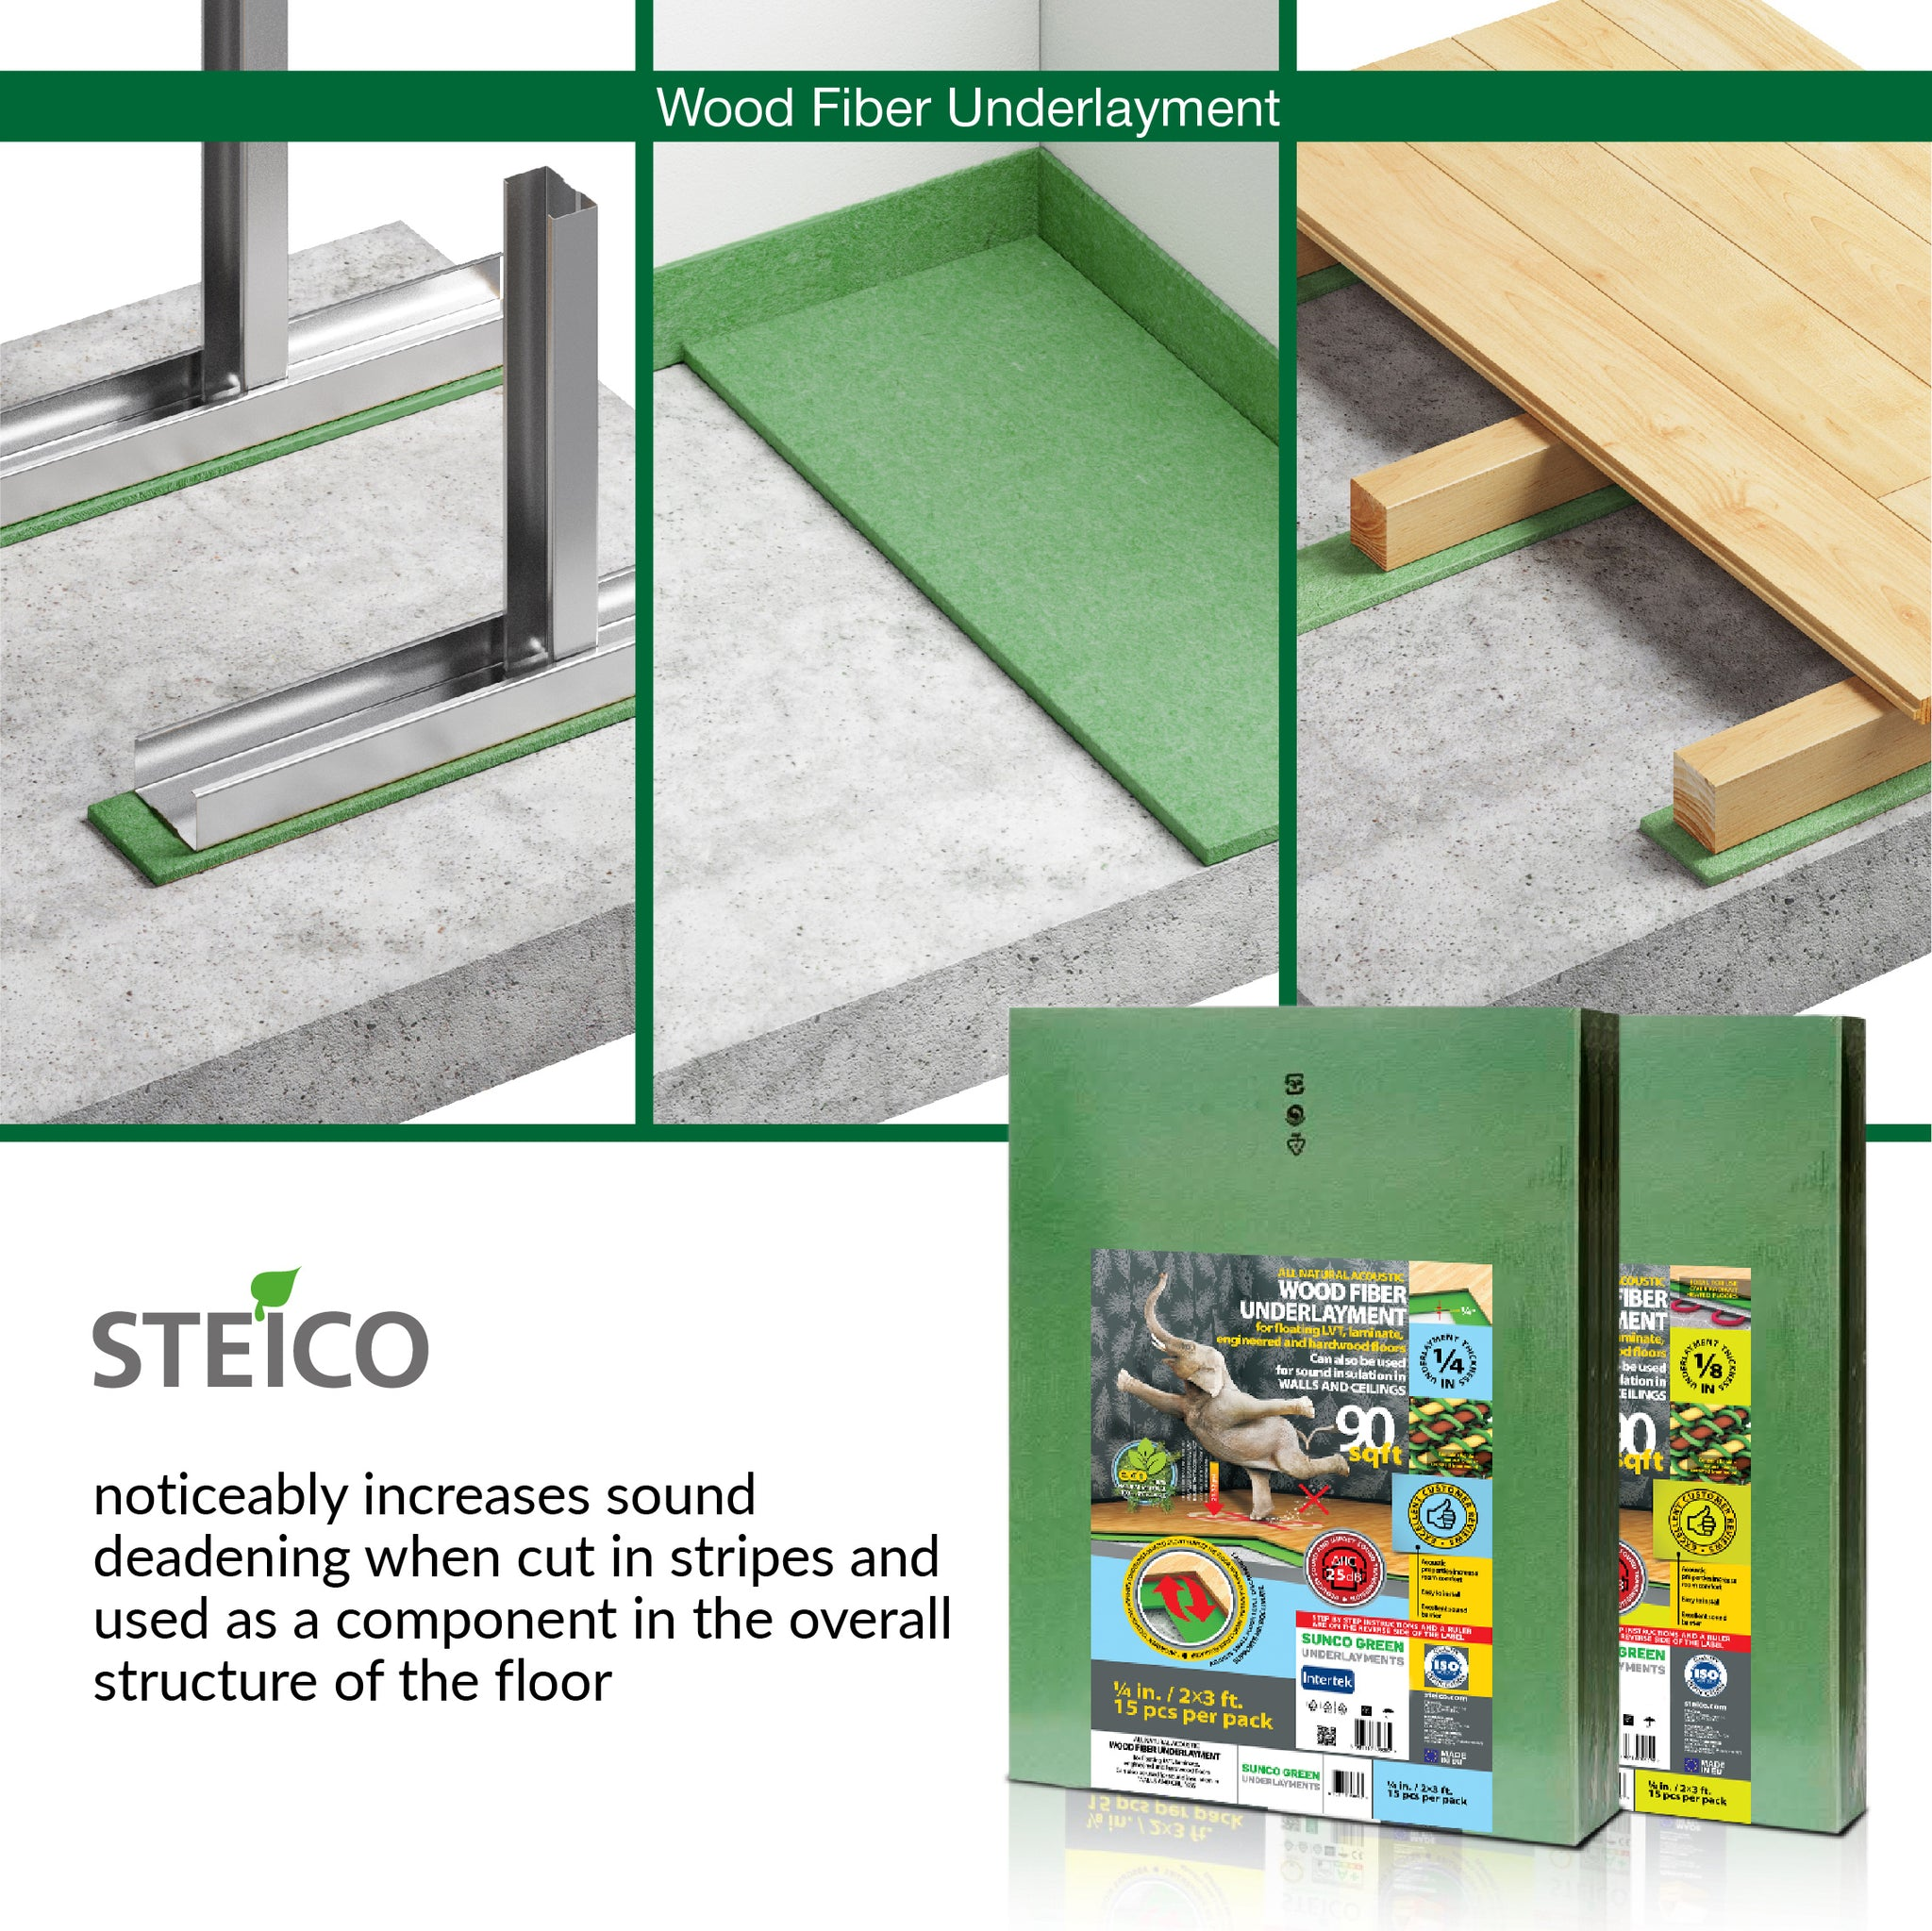 "STEICO WOOD FIBER UNDERLAYMENT 1/8"" 3 mm 270 SqFt"